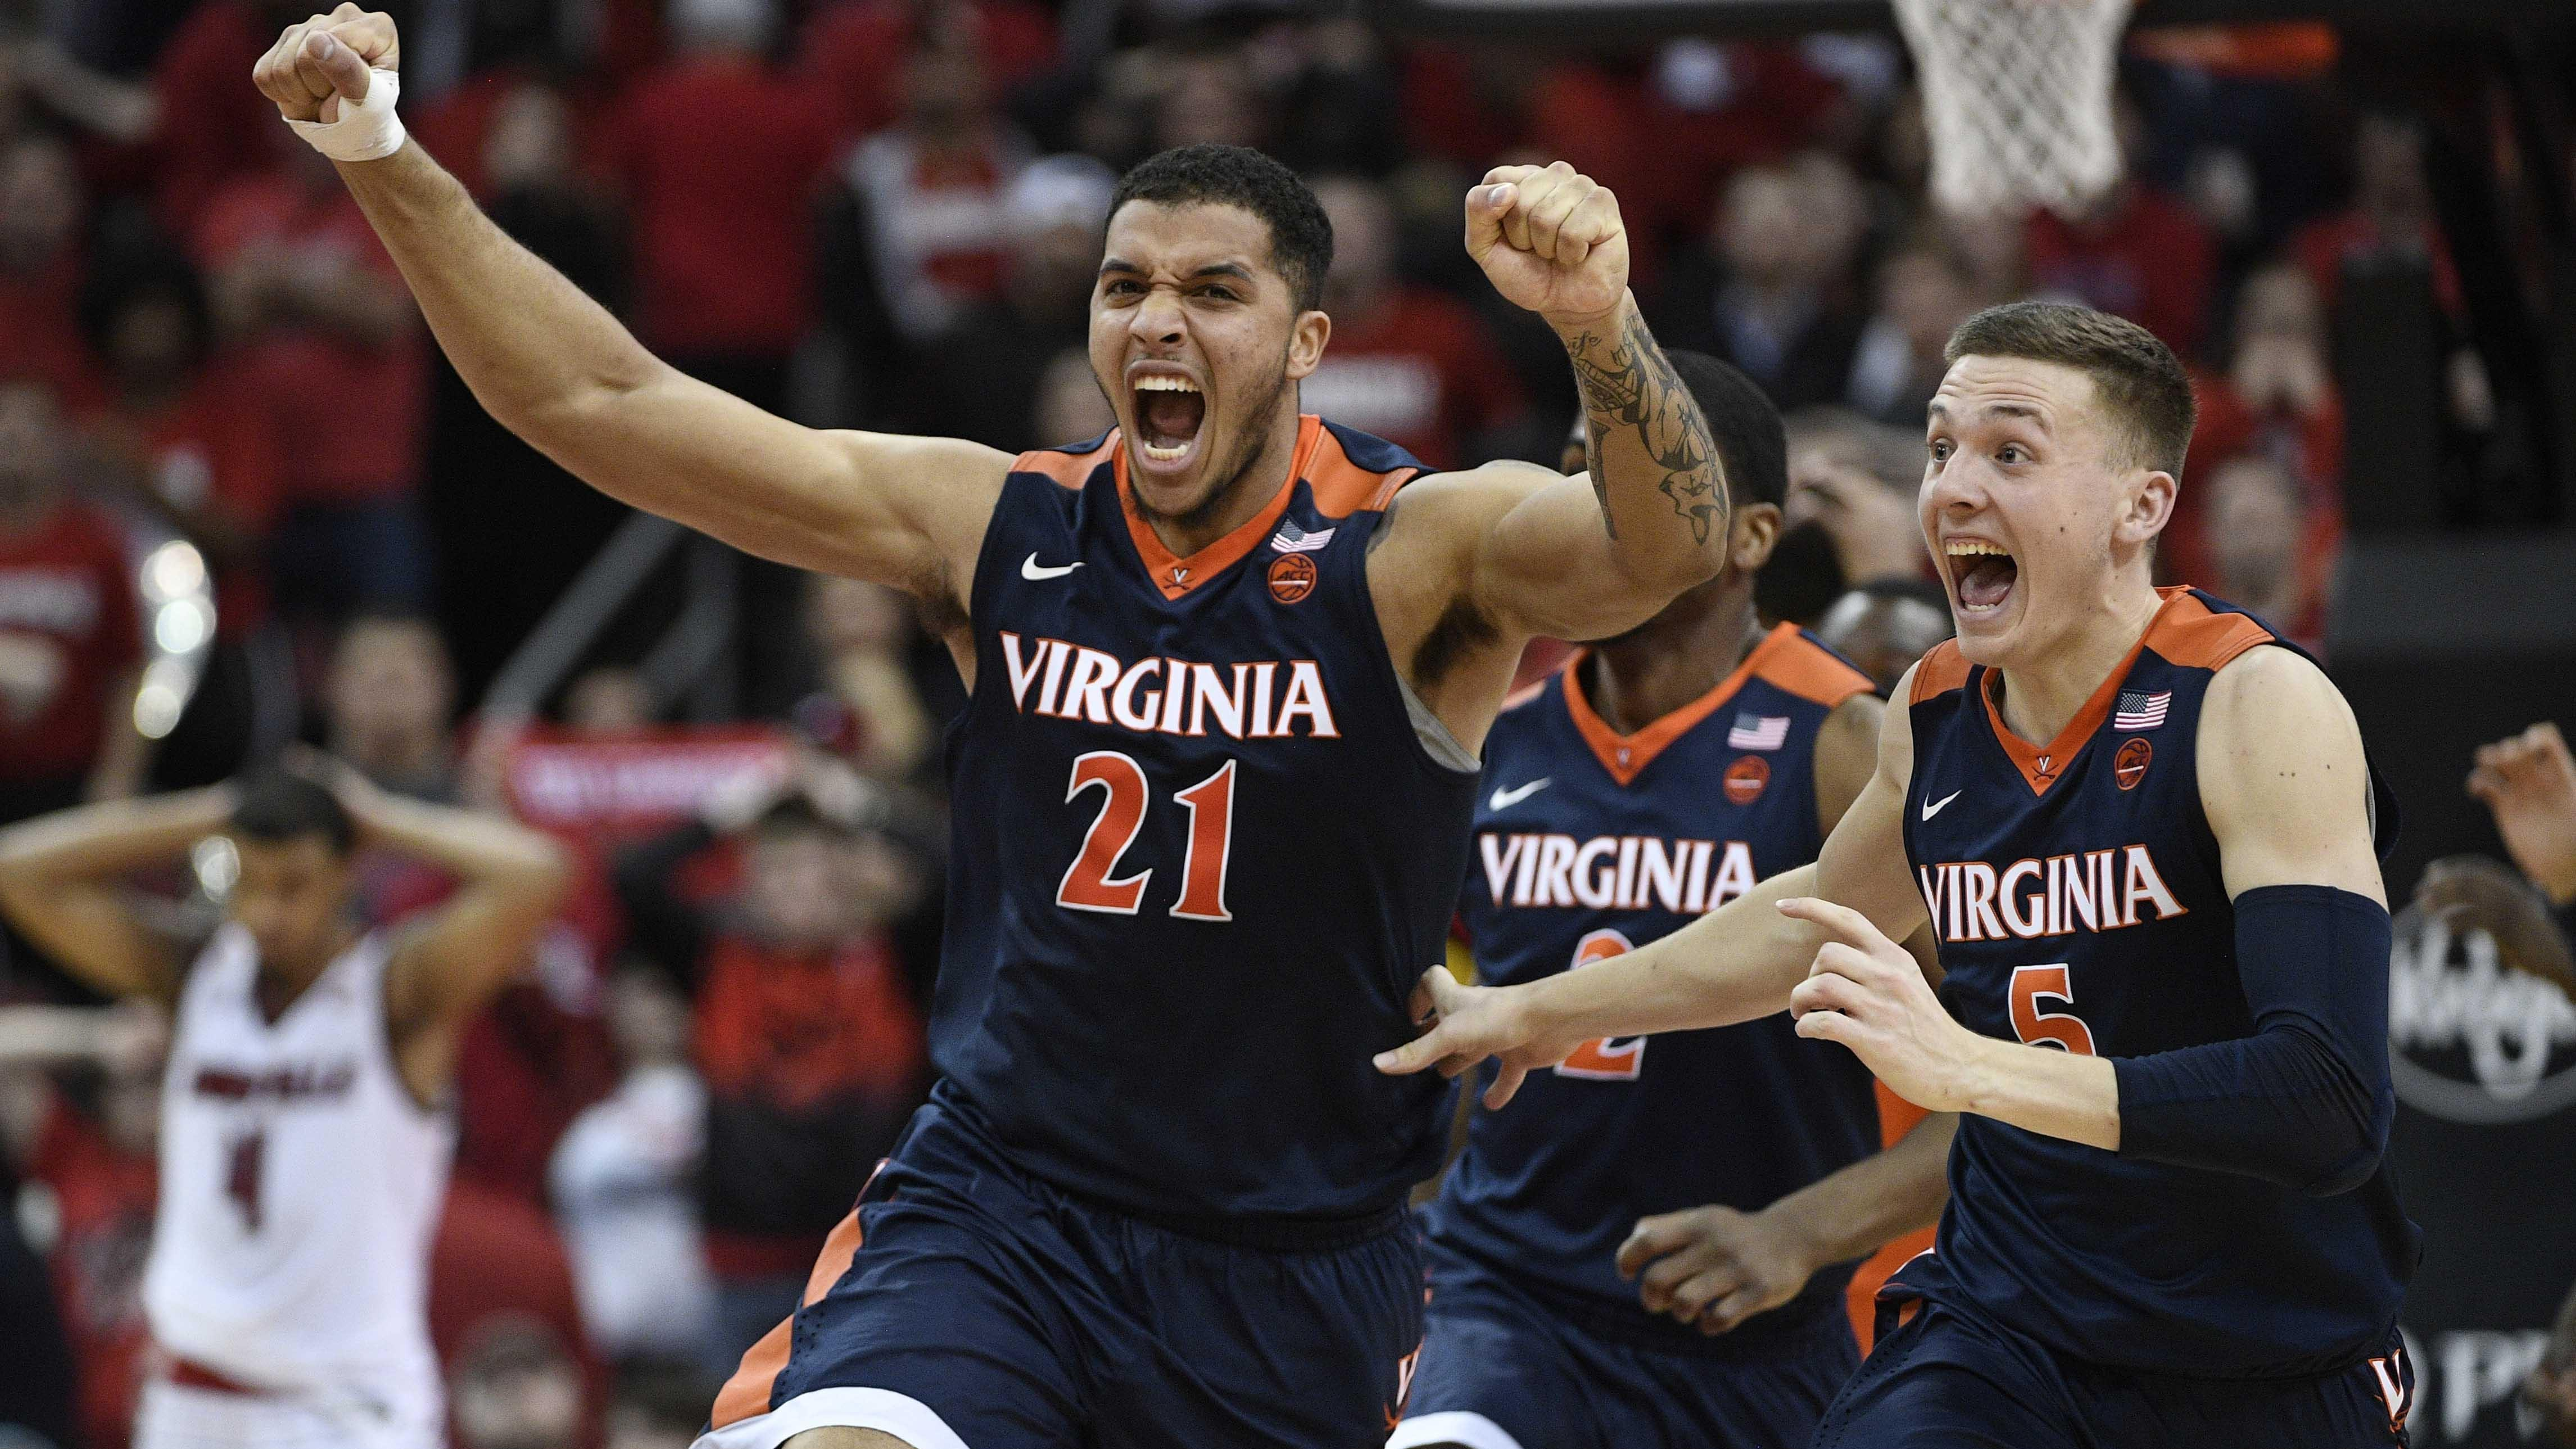 Virginia players celebrate after beating Louisville